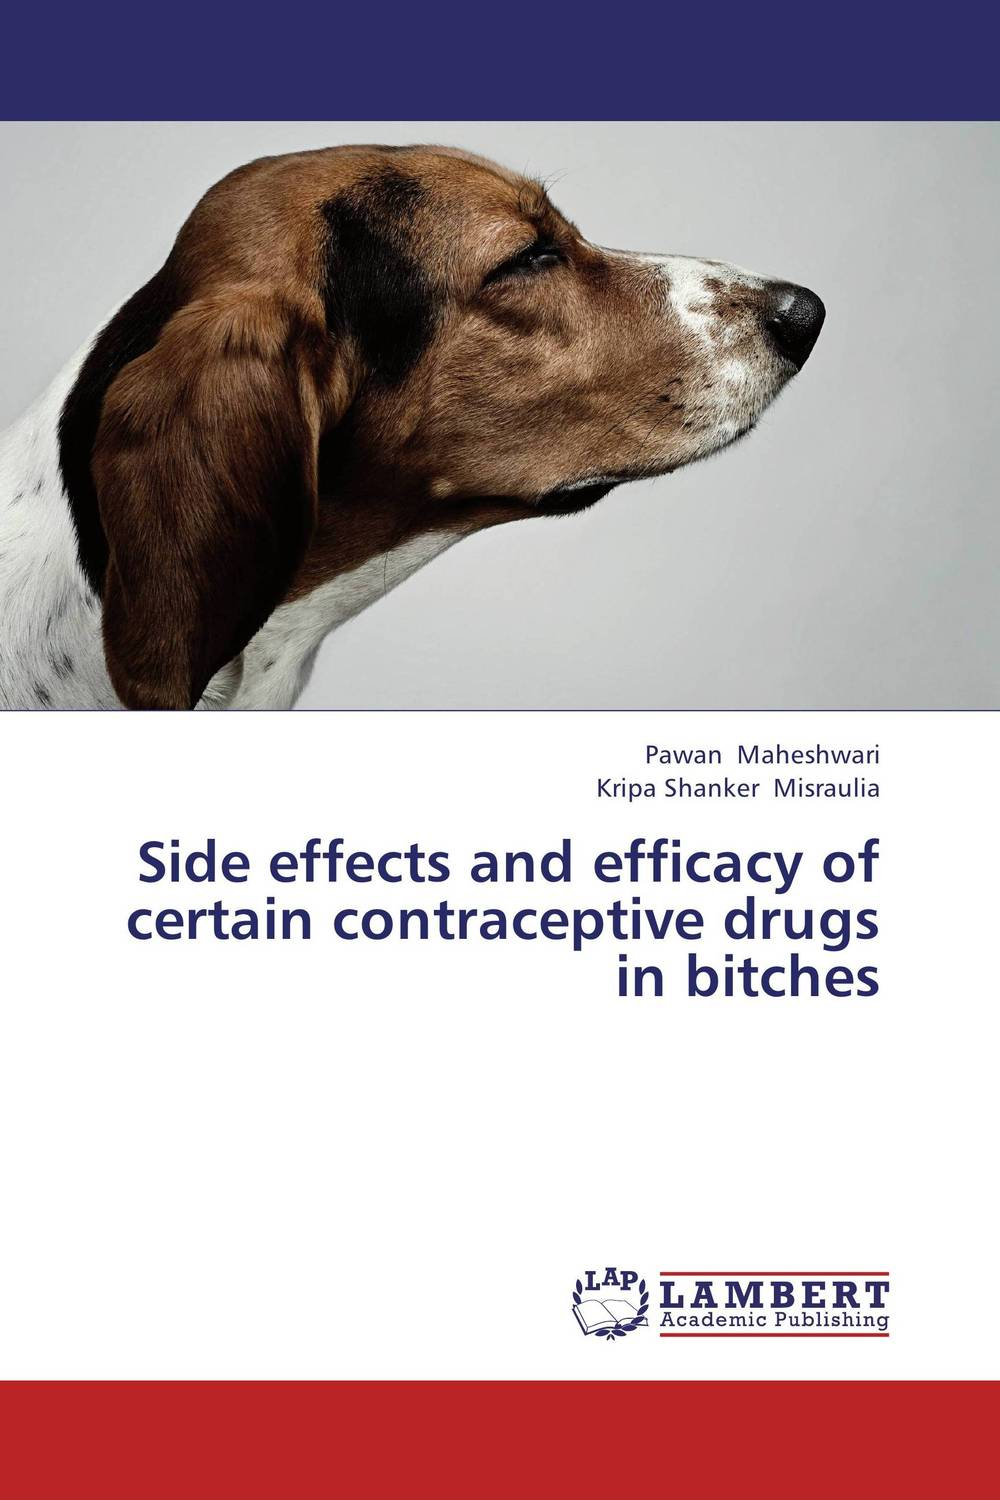 Side effects and efficacy of certain contraceptive drugs in bitches daniele michetti daniele michetti ботильоны женские 134 page 5